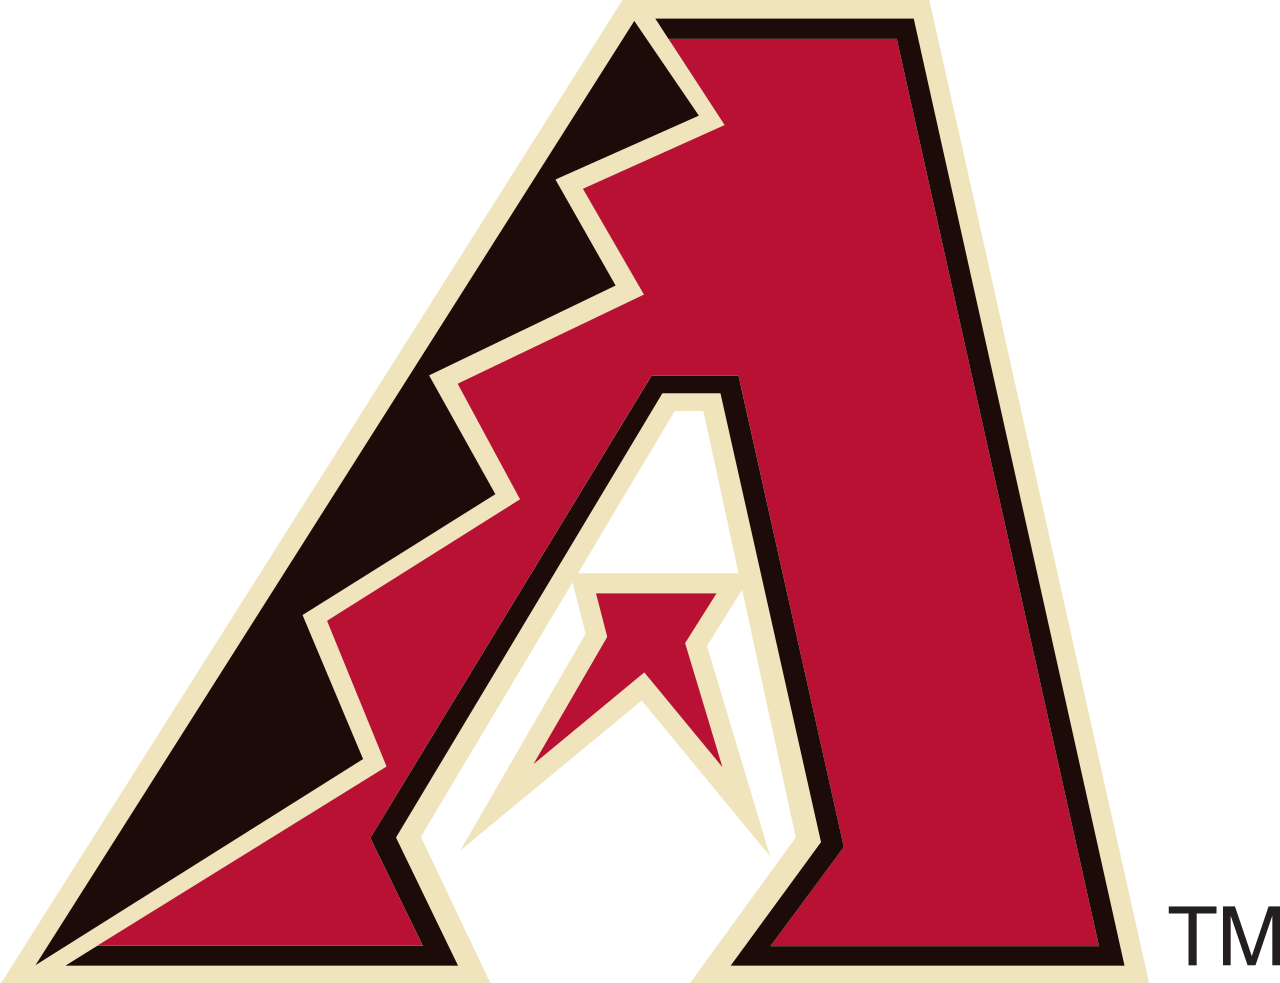 Arizona_Diamondbacks_logo.svg.png